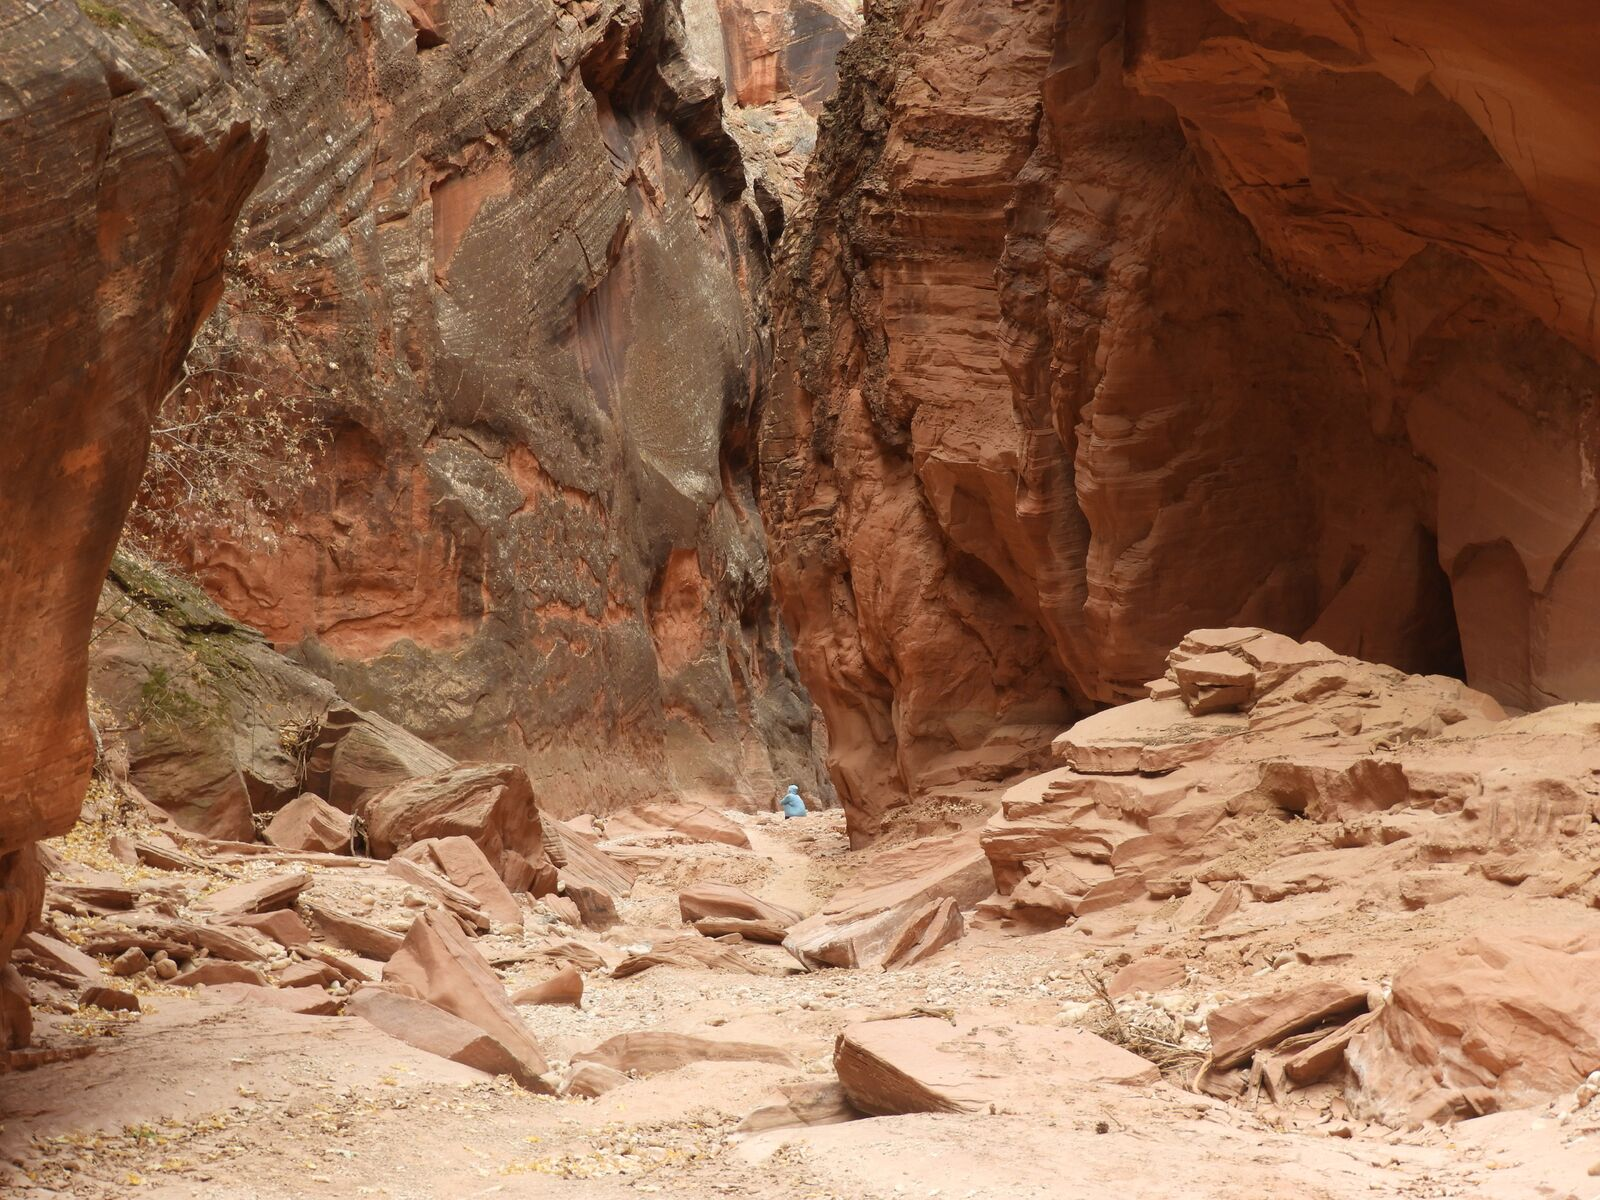 This is tiny me in a big canyon having a starring contest with a baby rattlesnake unaware as Casey Crosbie snaps a photo. I'm not suggesting you do this. (Have a starring contest with a baby rattler, that is. Snap all the photos you want.)